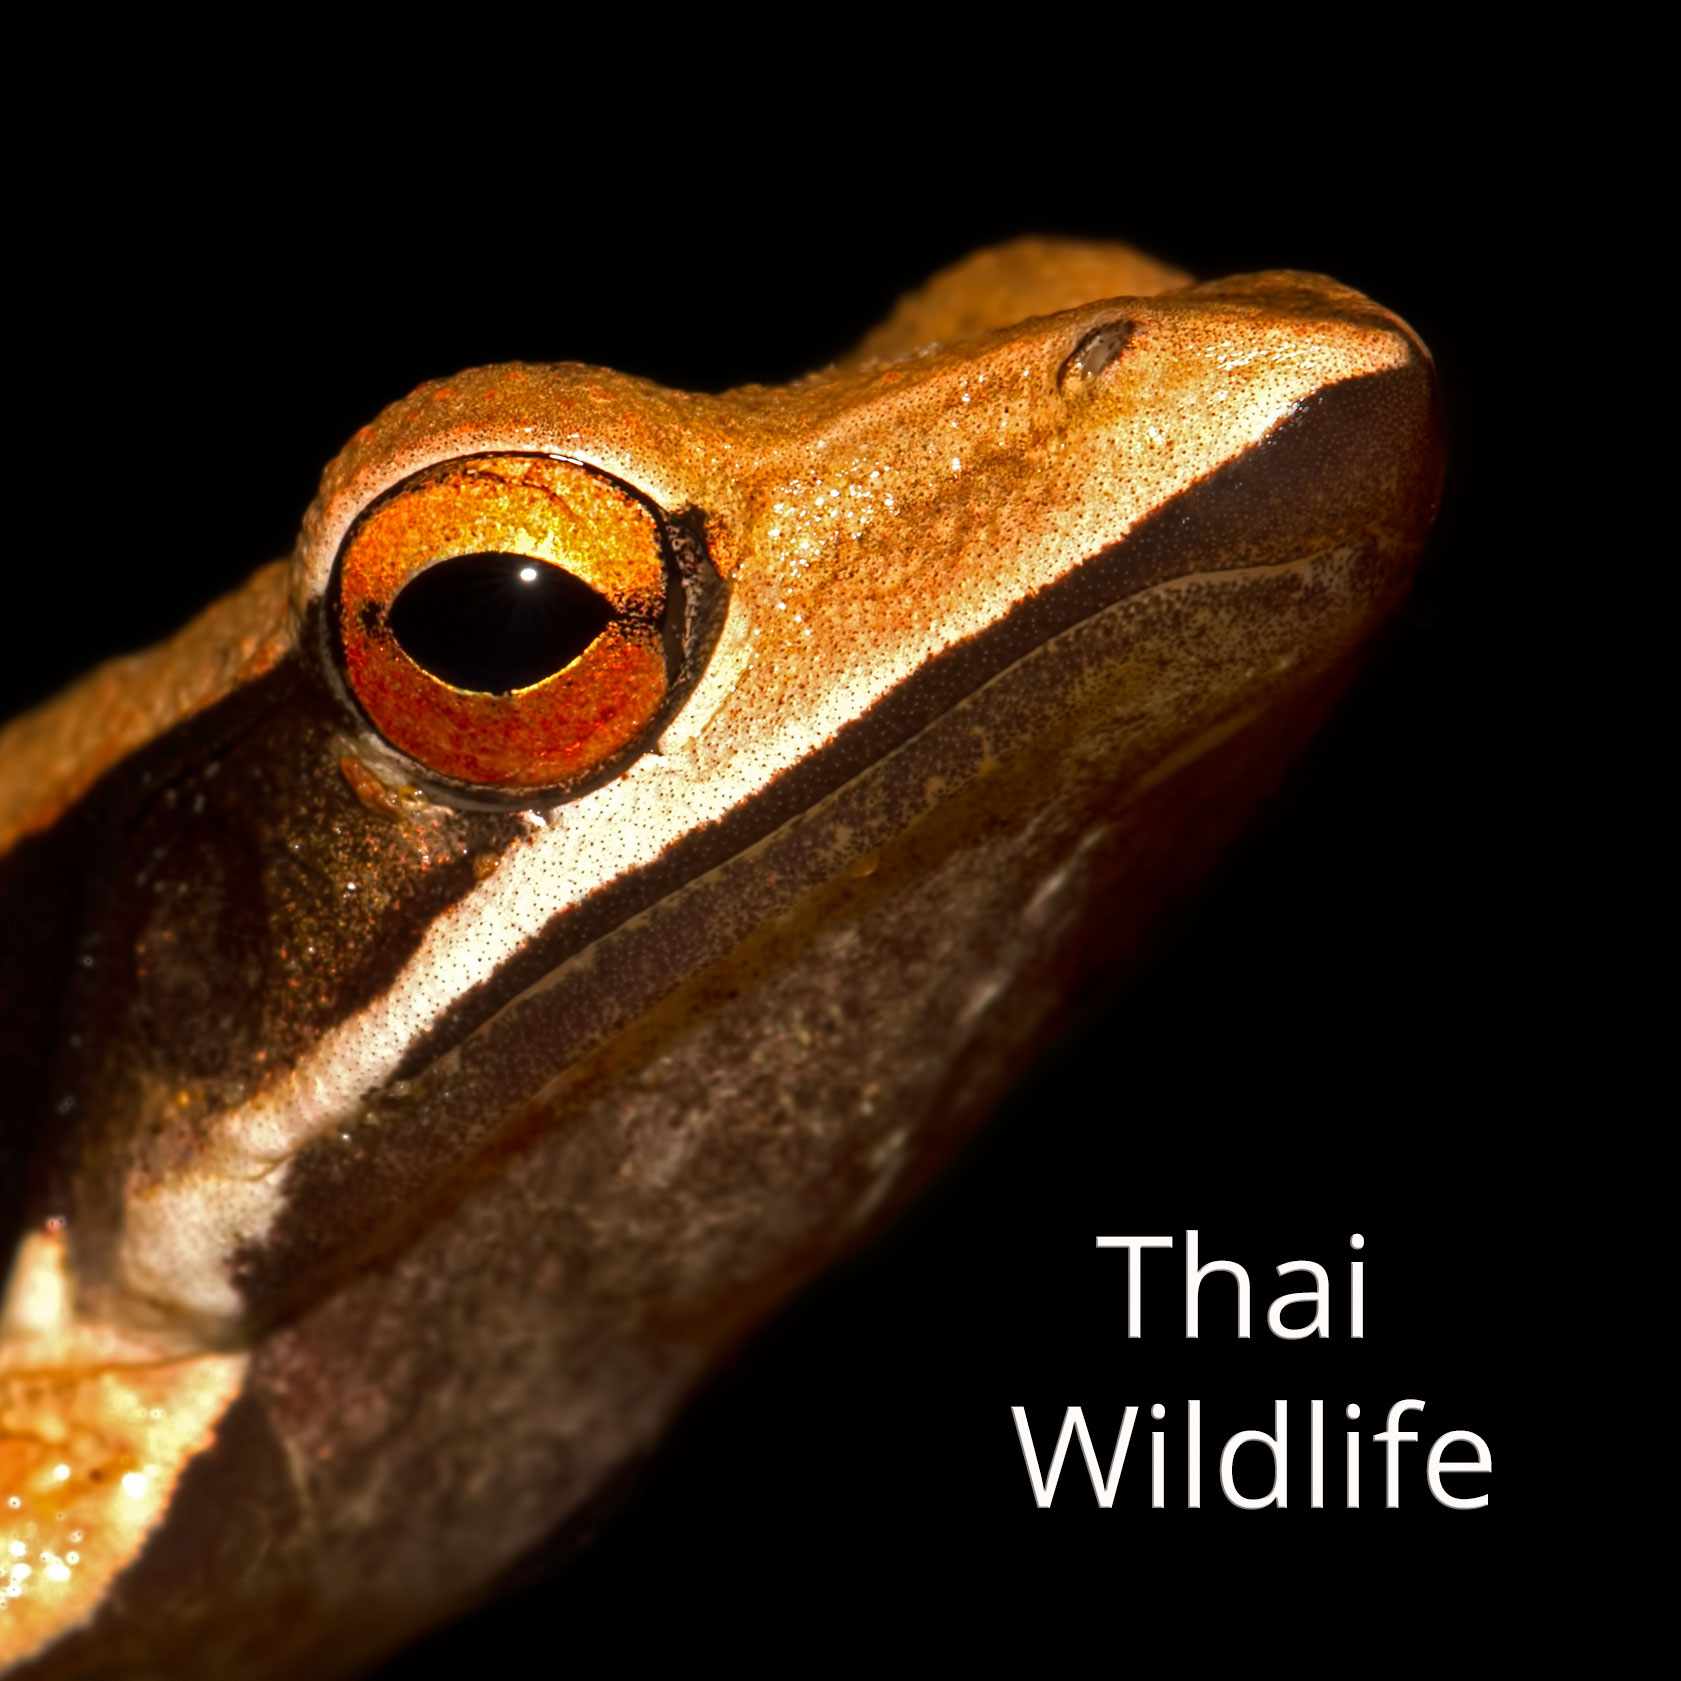 Point-nosed frog (Clinotarsus alticola)